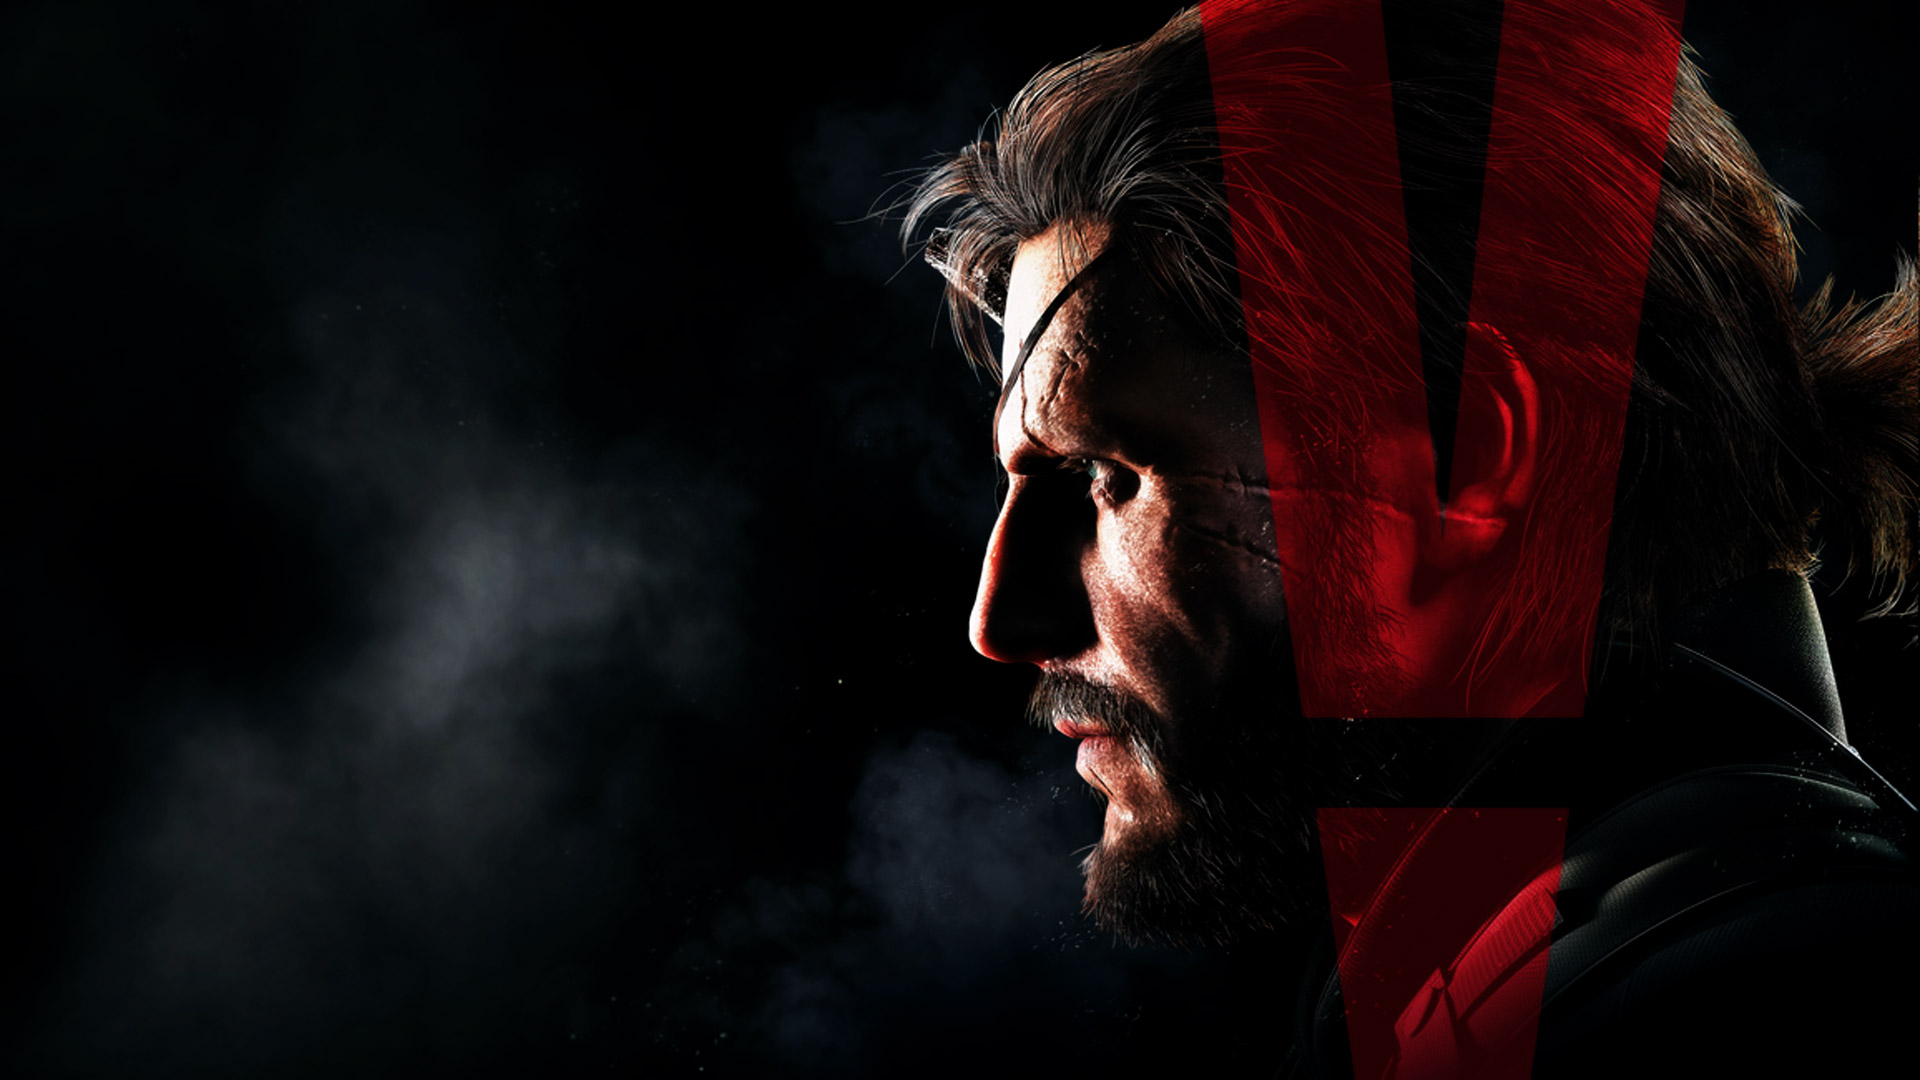 129 metal gear solid v the phantom pain hd wallpapers